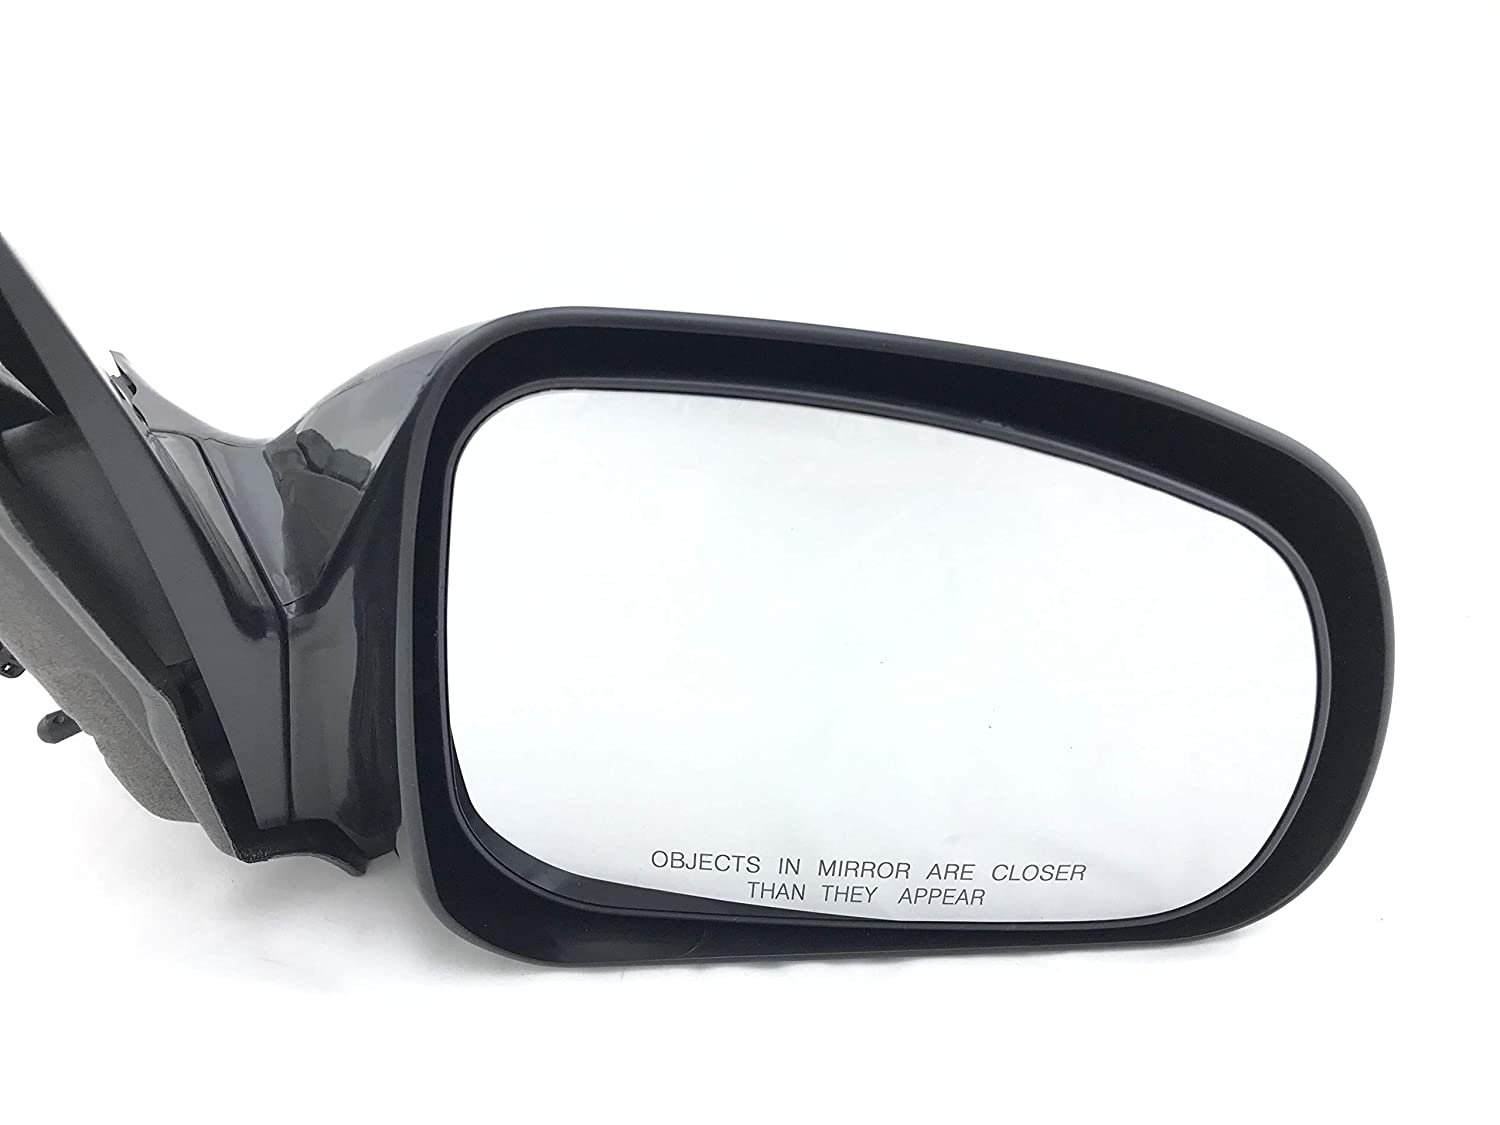 OE: GM1321279 | Right Outside Rear View Mirror Passenger Side Mirror for Pontiac GRAND PRIX 04-08 PWR N-HT MIR RH PTM Parts Link #: 15796389